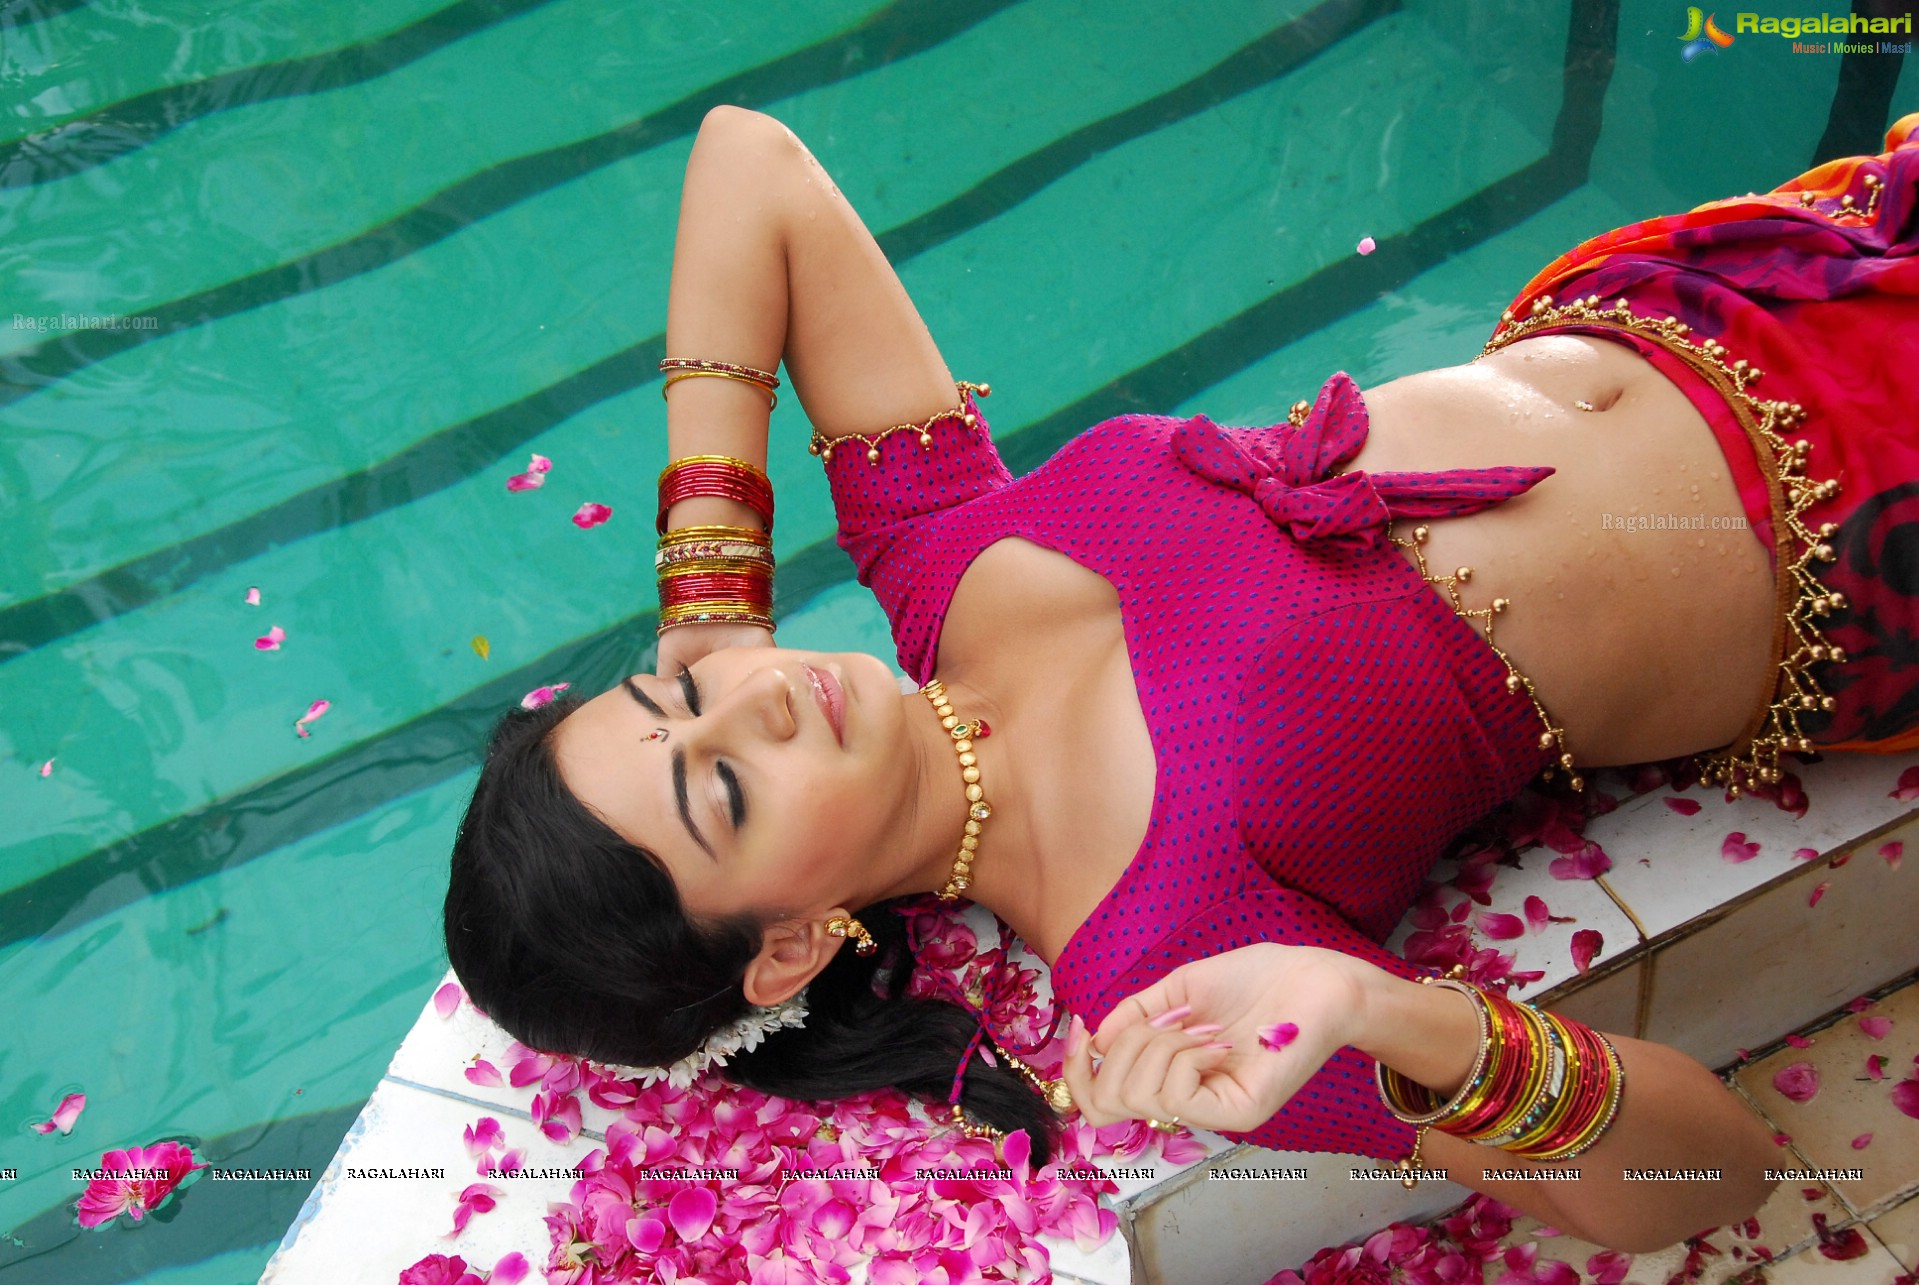 Neelam Upadhyaya Hot In Pink Dress Showing Hips